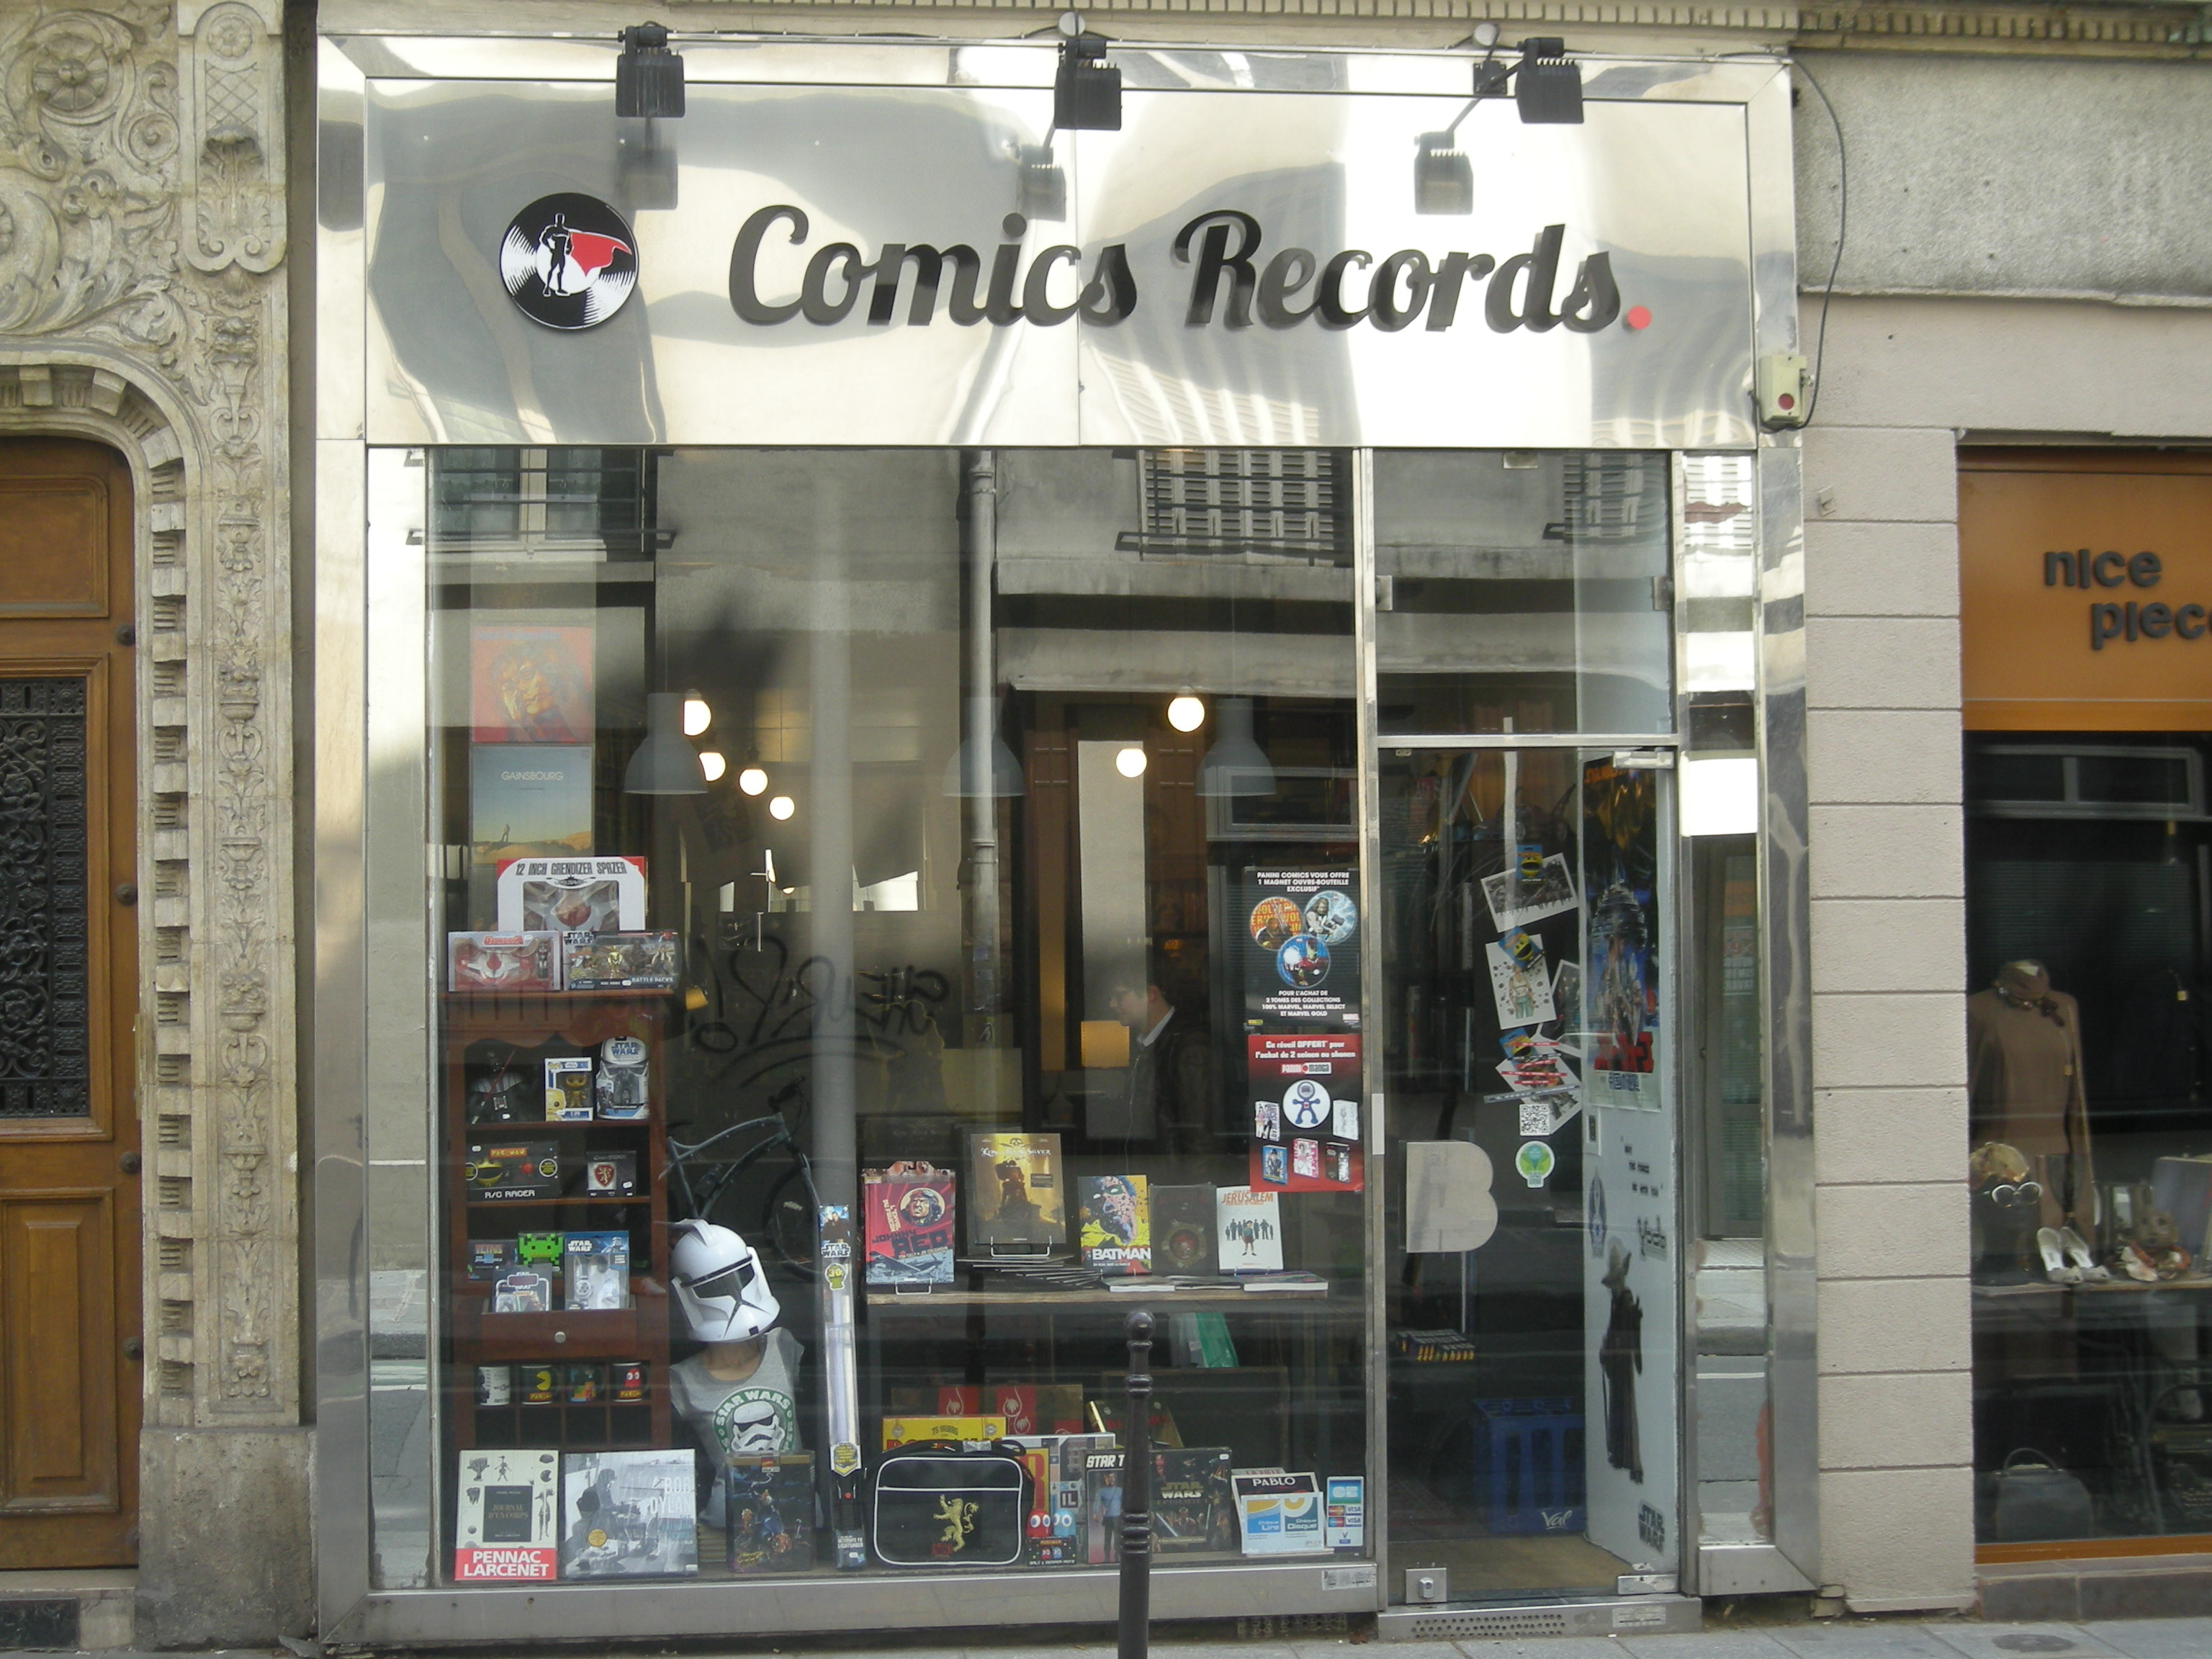 Comics Records